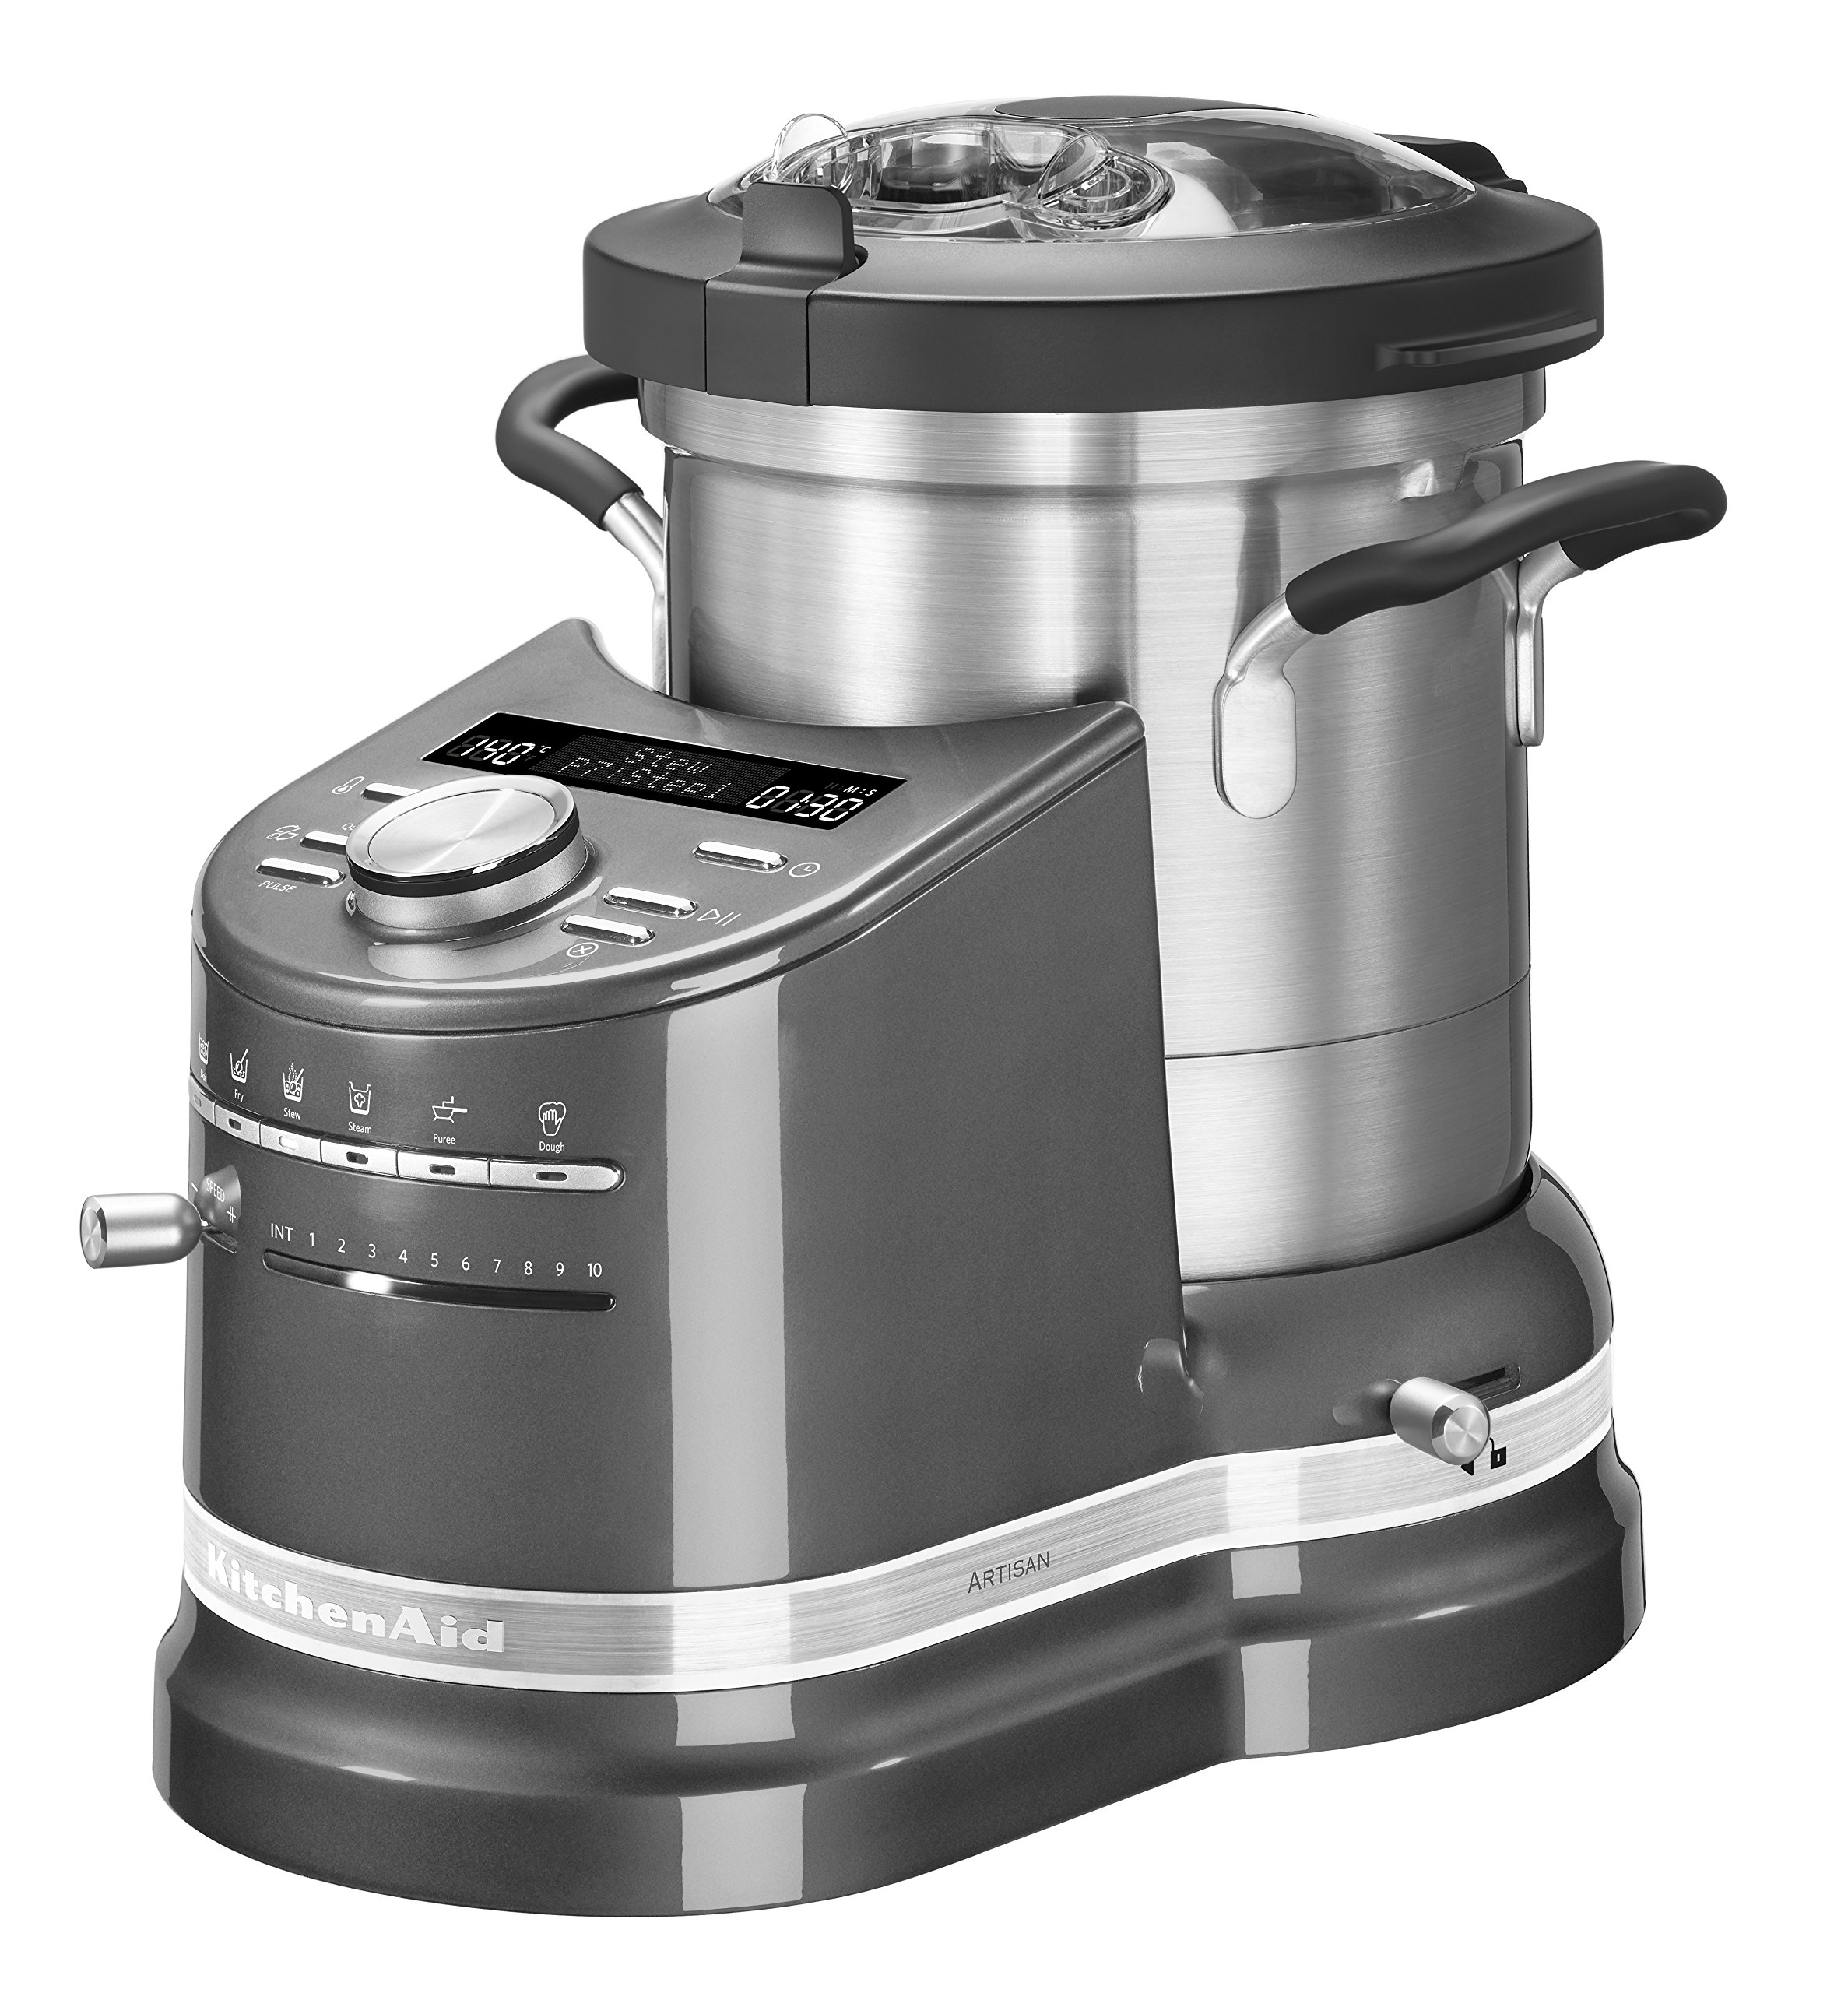 Kitchenaid Cook Processor - Robot de cocina, 1500 W, color plateado: Amazon.es: Hogar